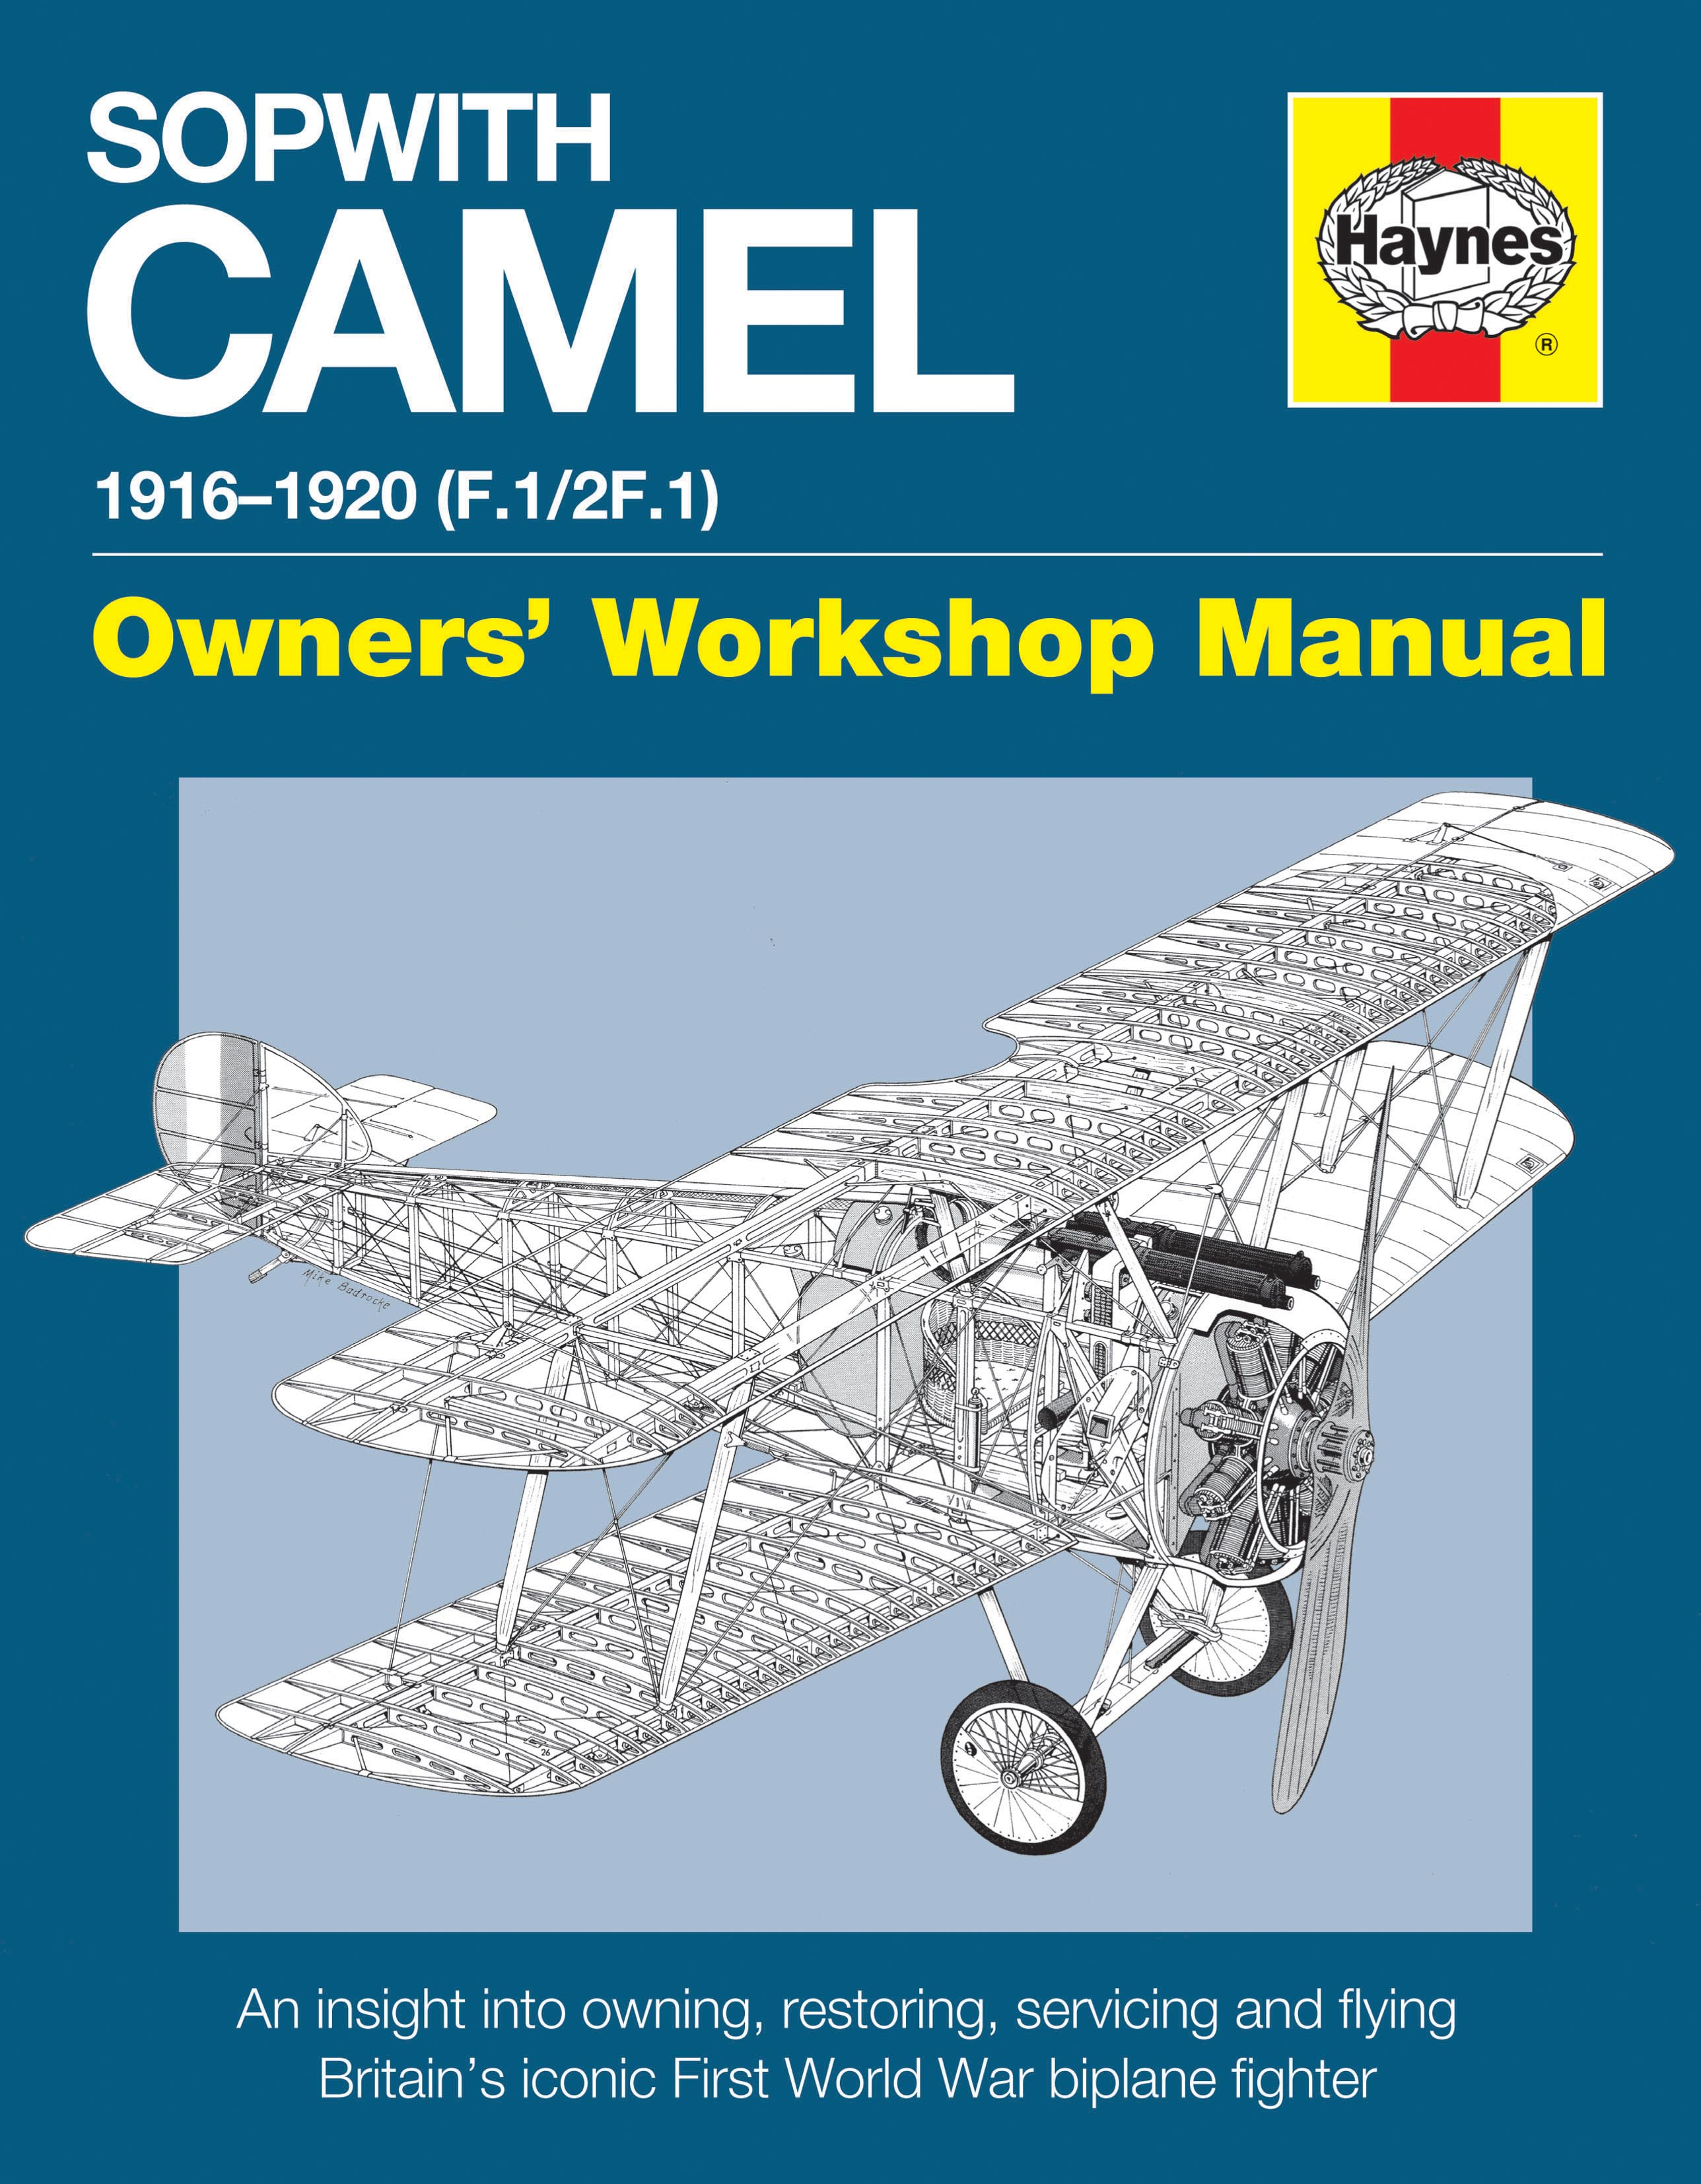 Sopwith Camel Manual